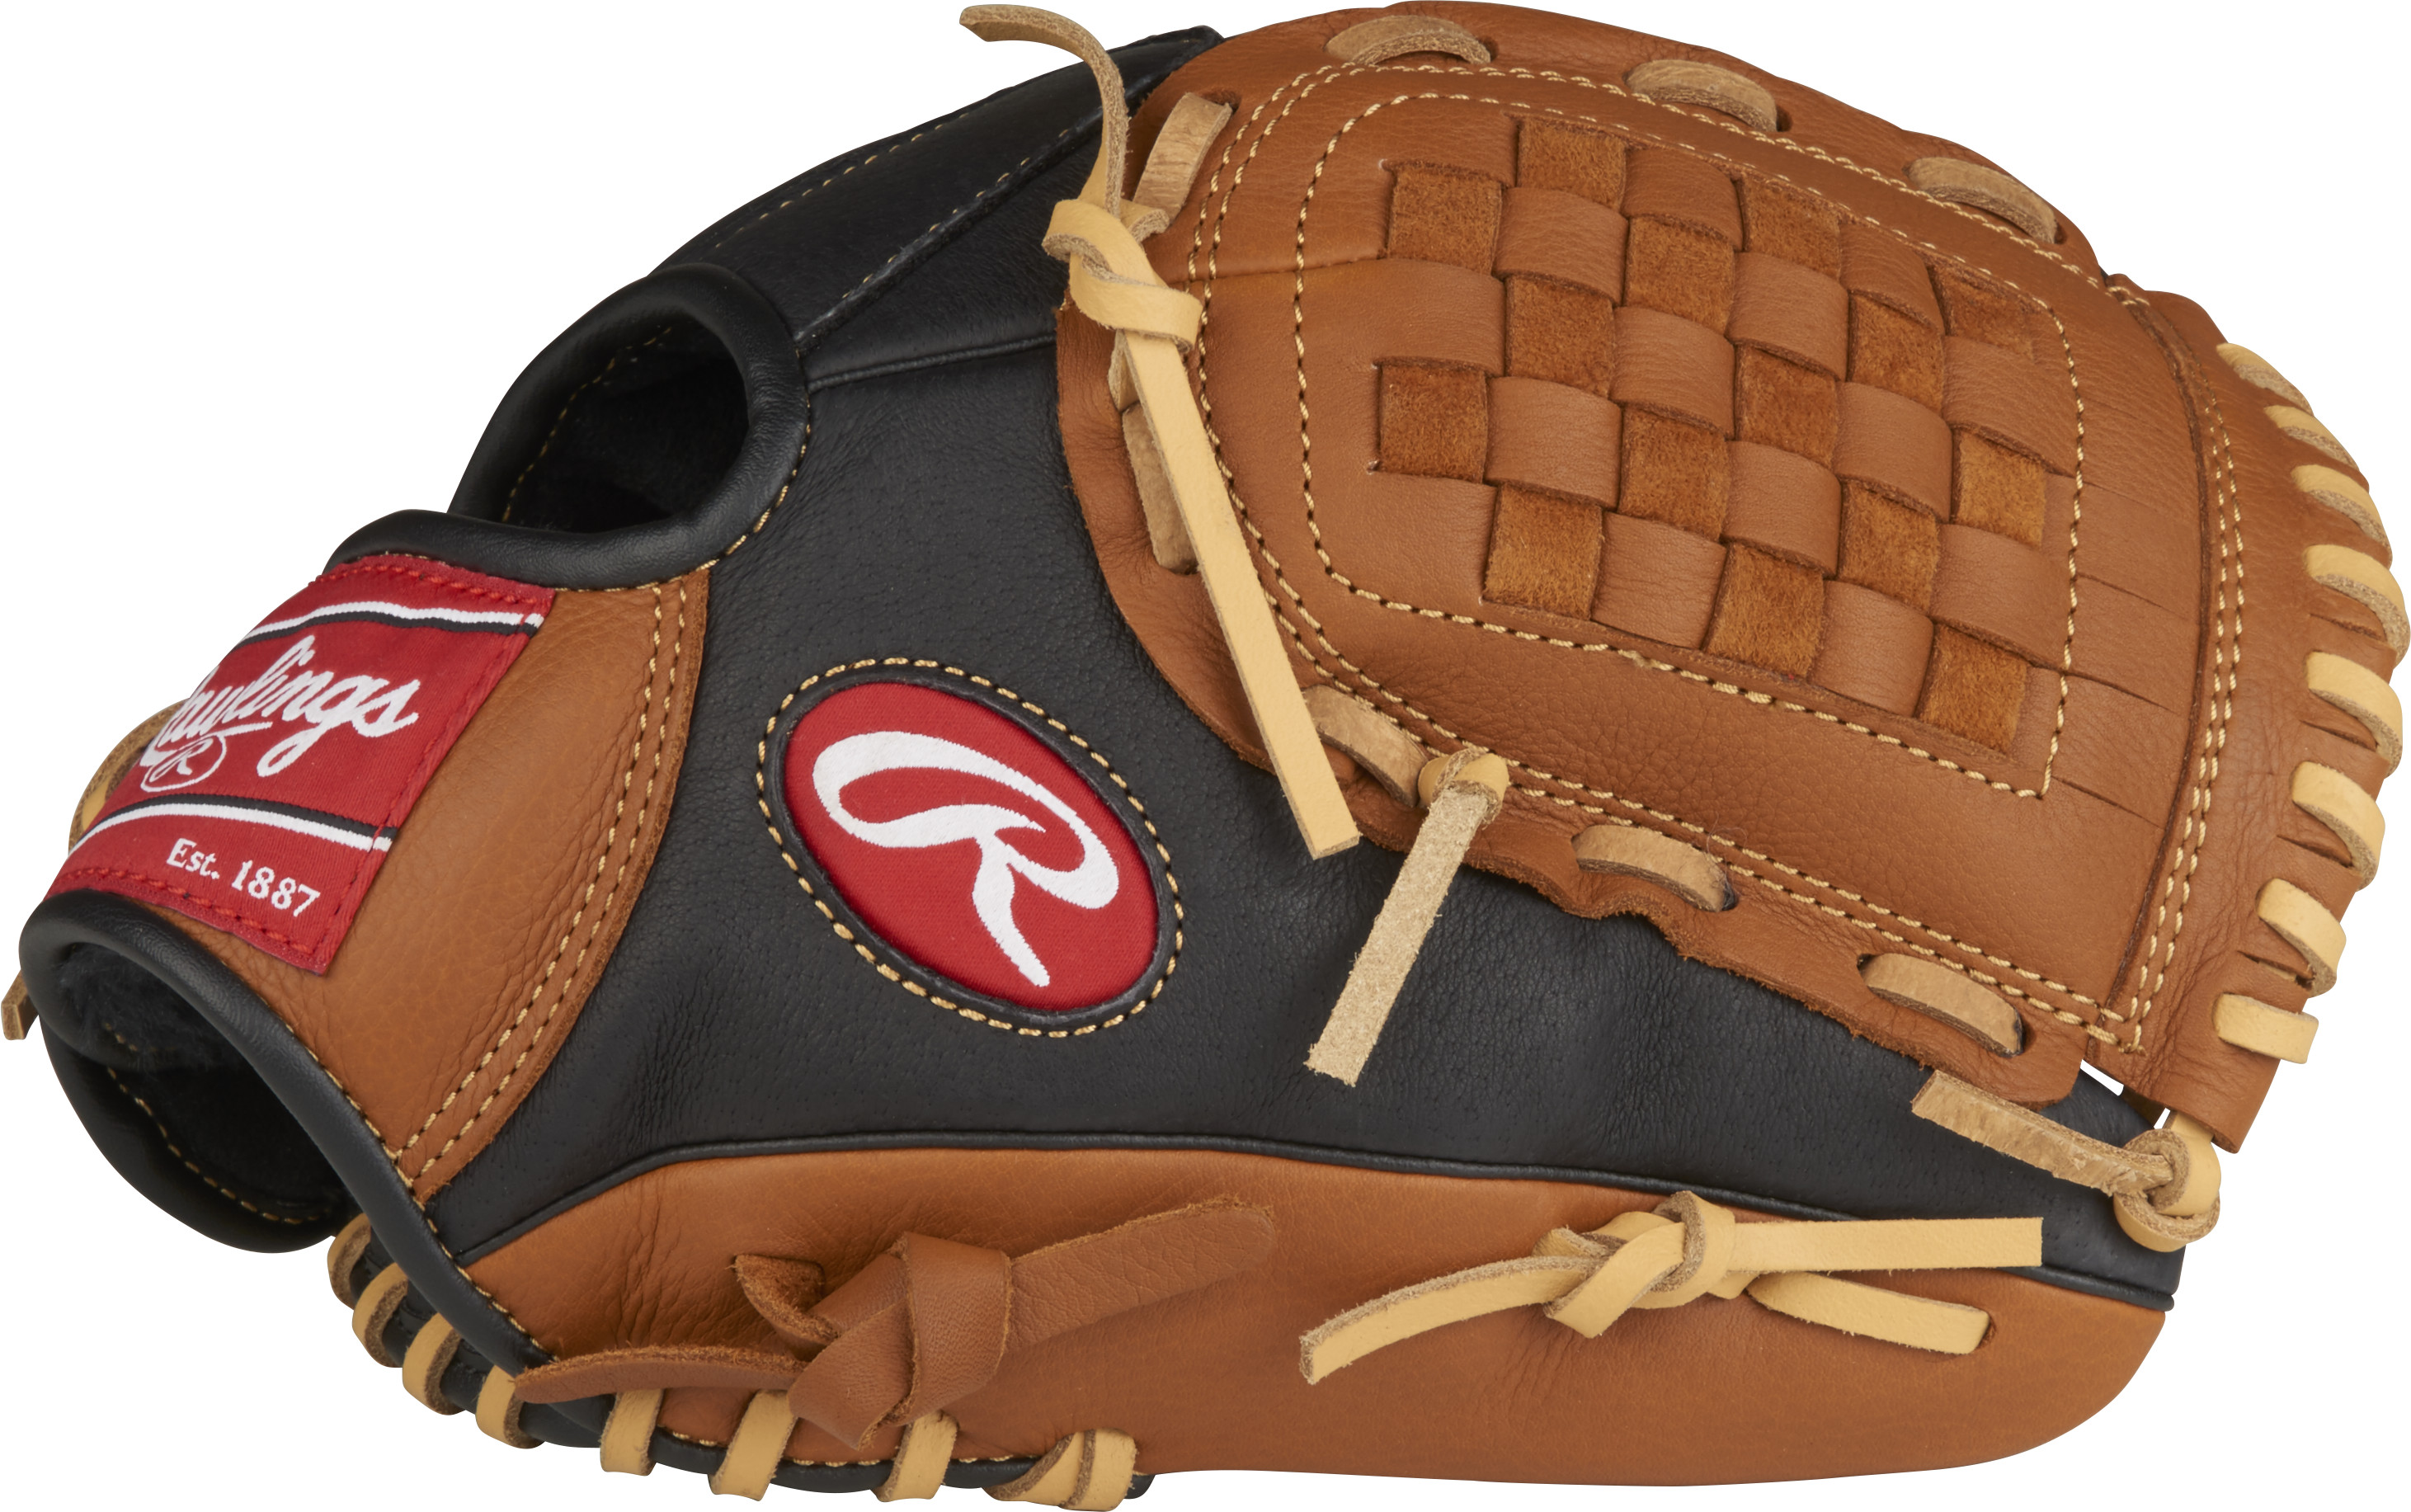 http://www.bestbatdeals.com/images/gloves/rawlings/P110GBB-3.jpg